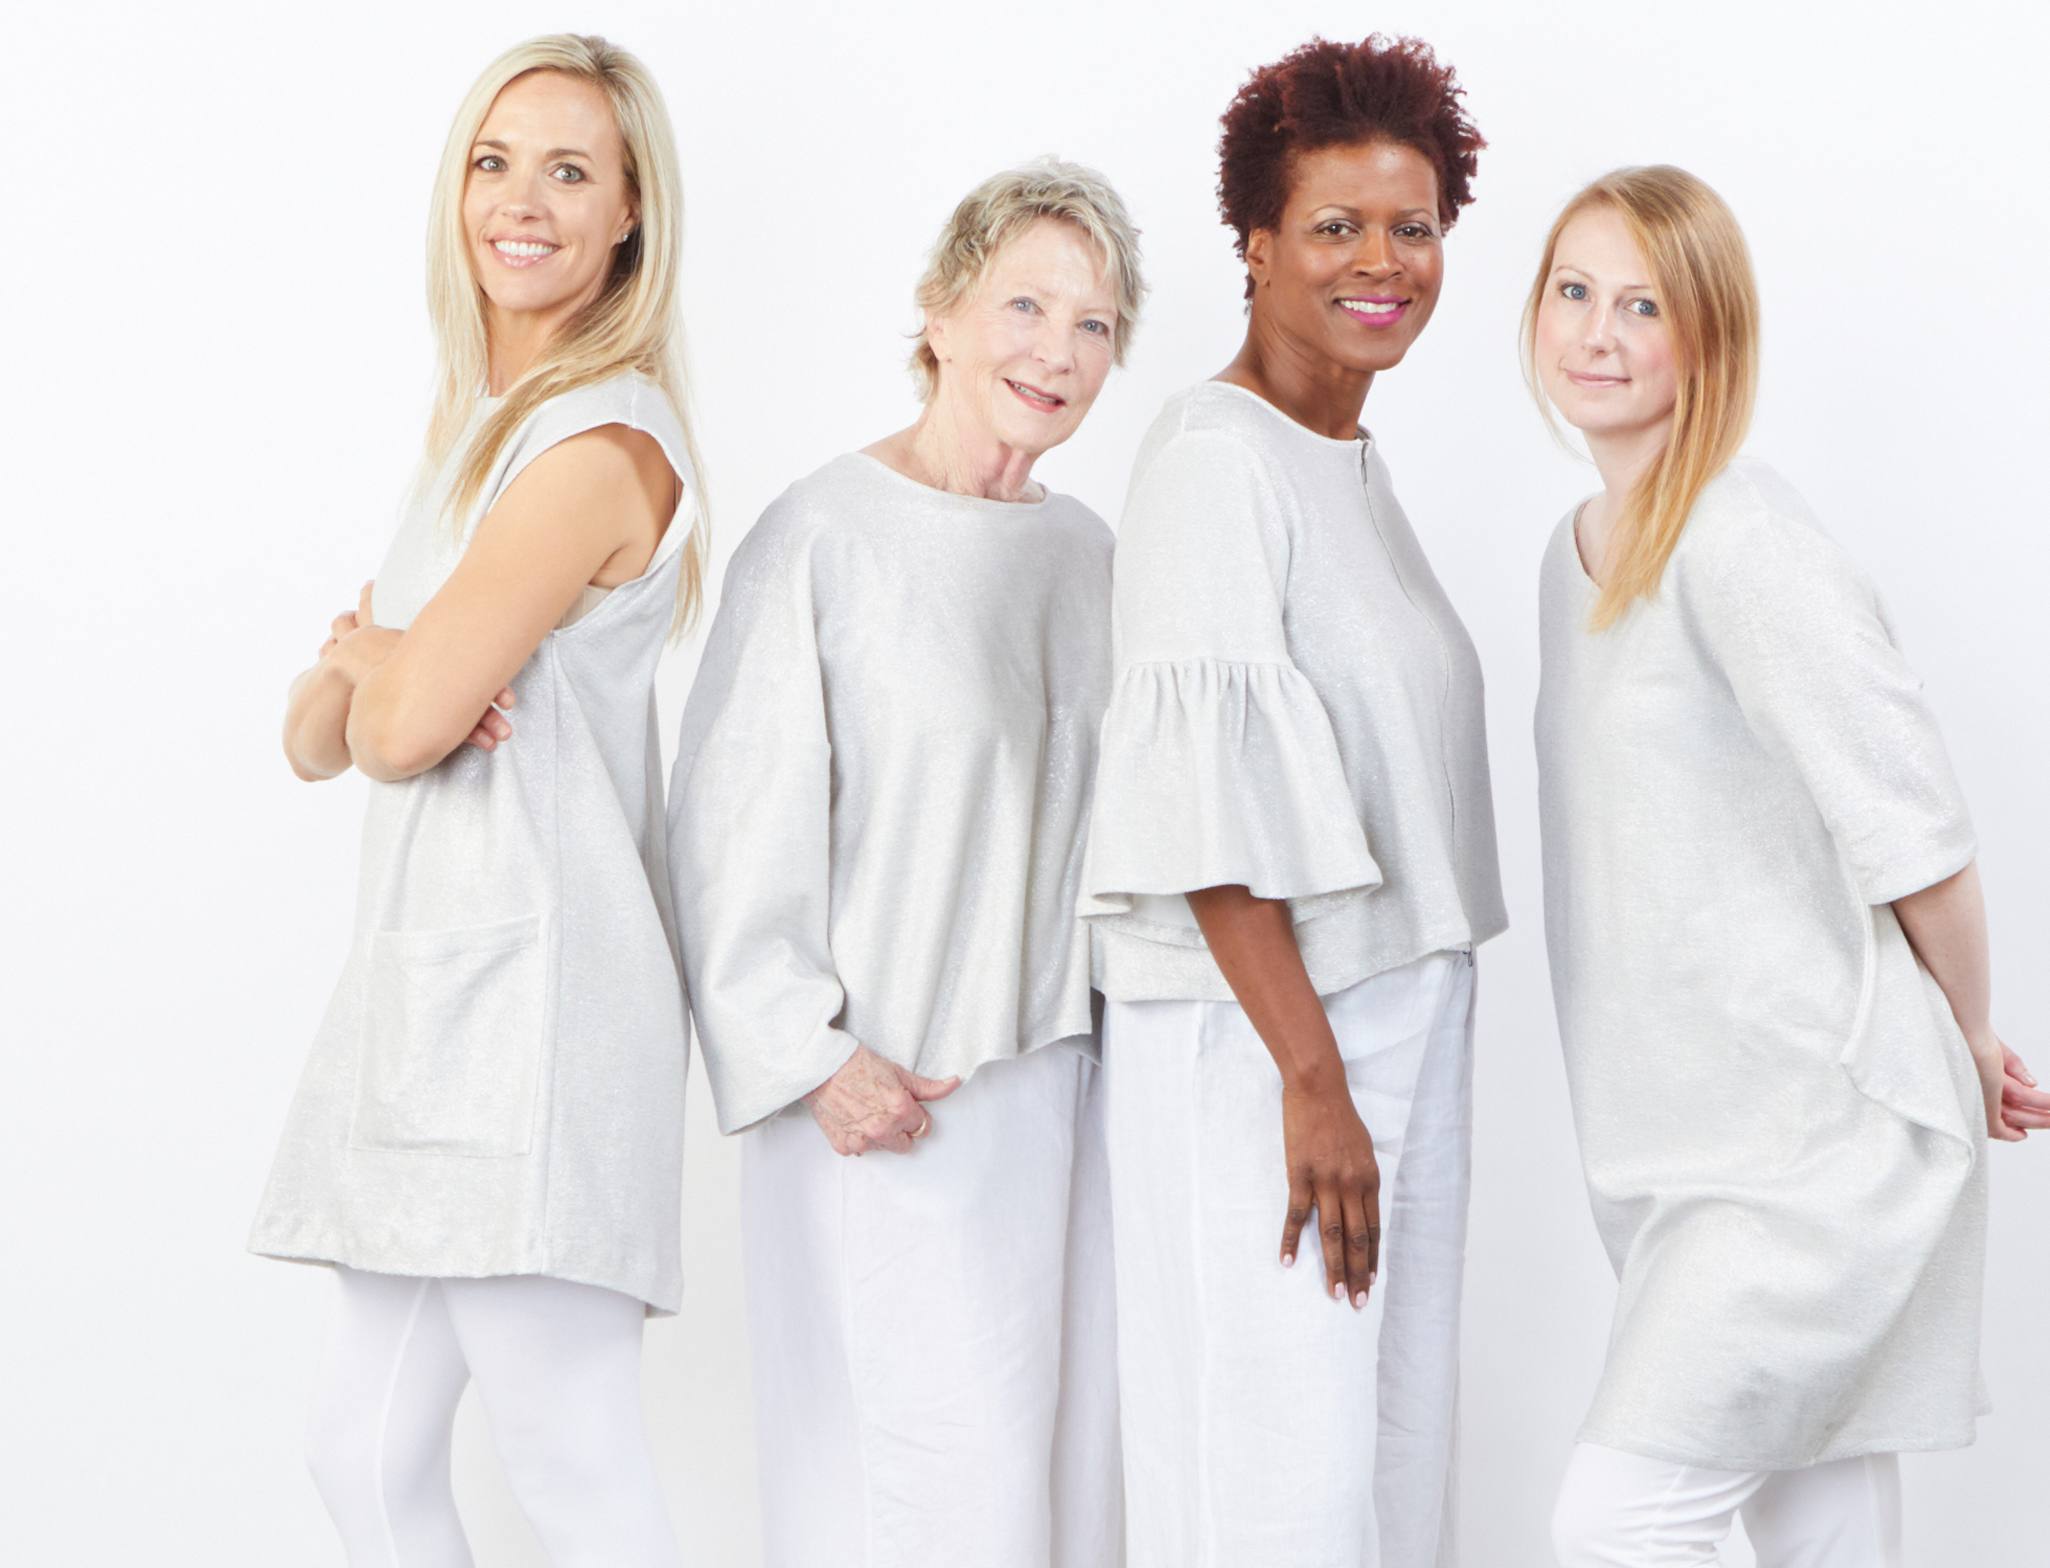 Clyde Tunic, Play Shirt, Frida Zip Jacket, Conrad Tunic in Silver Ready for Newport Beach, Legging, Flare Capri Pant in White Bamboo Cotton, Long Full Pant, Flood Pant in White Light Linen